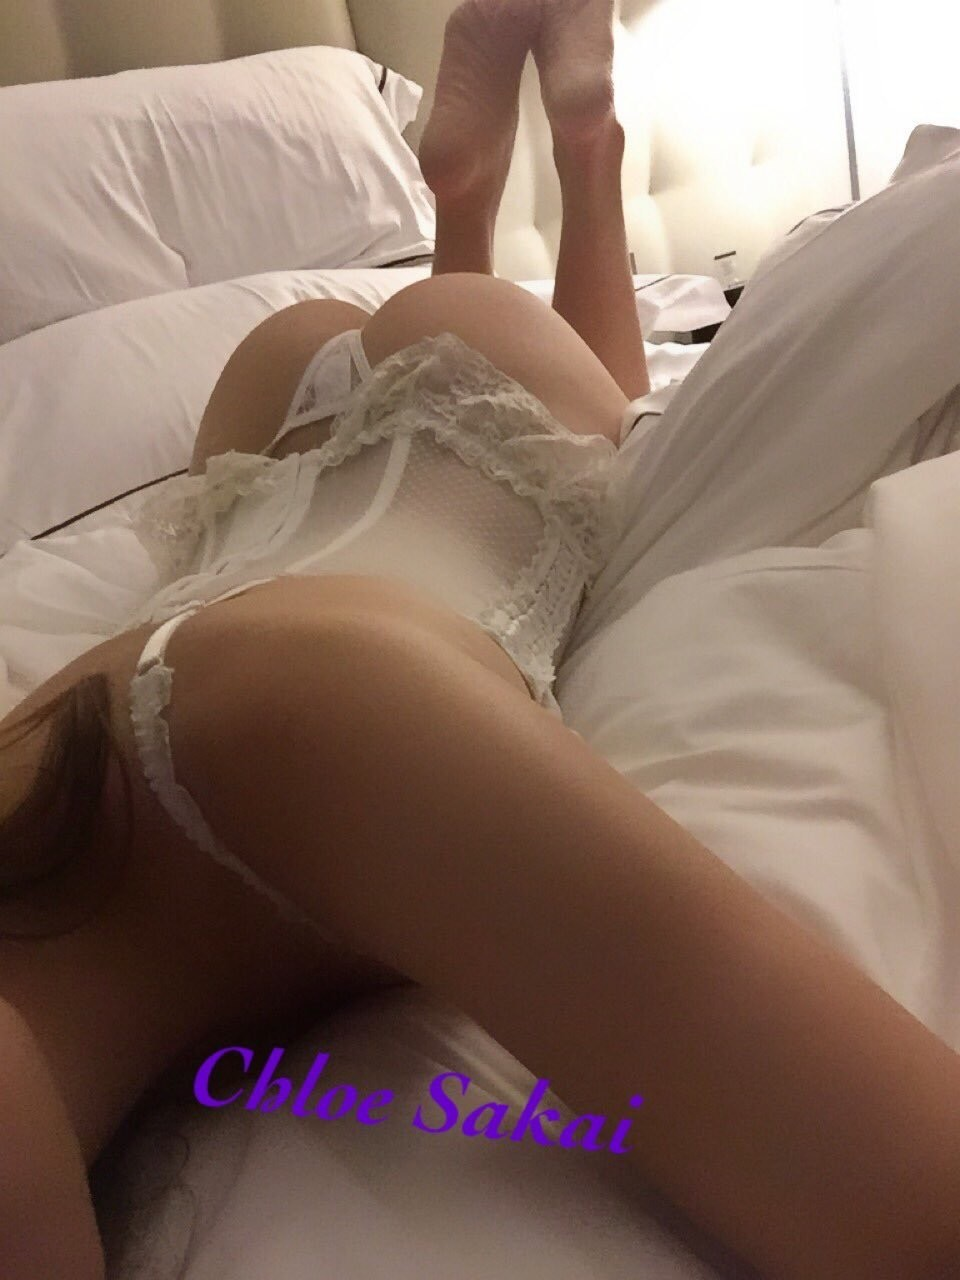 Selfie Pics from Chloe Sakai - Private Escort Melbourne